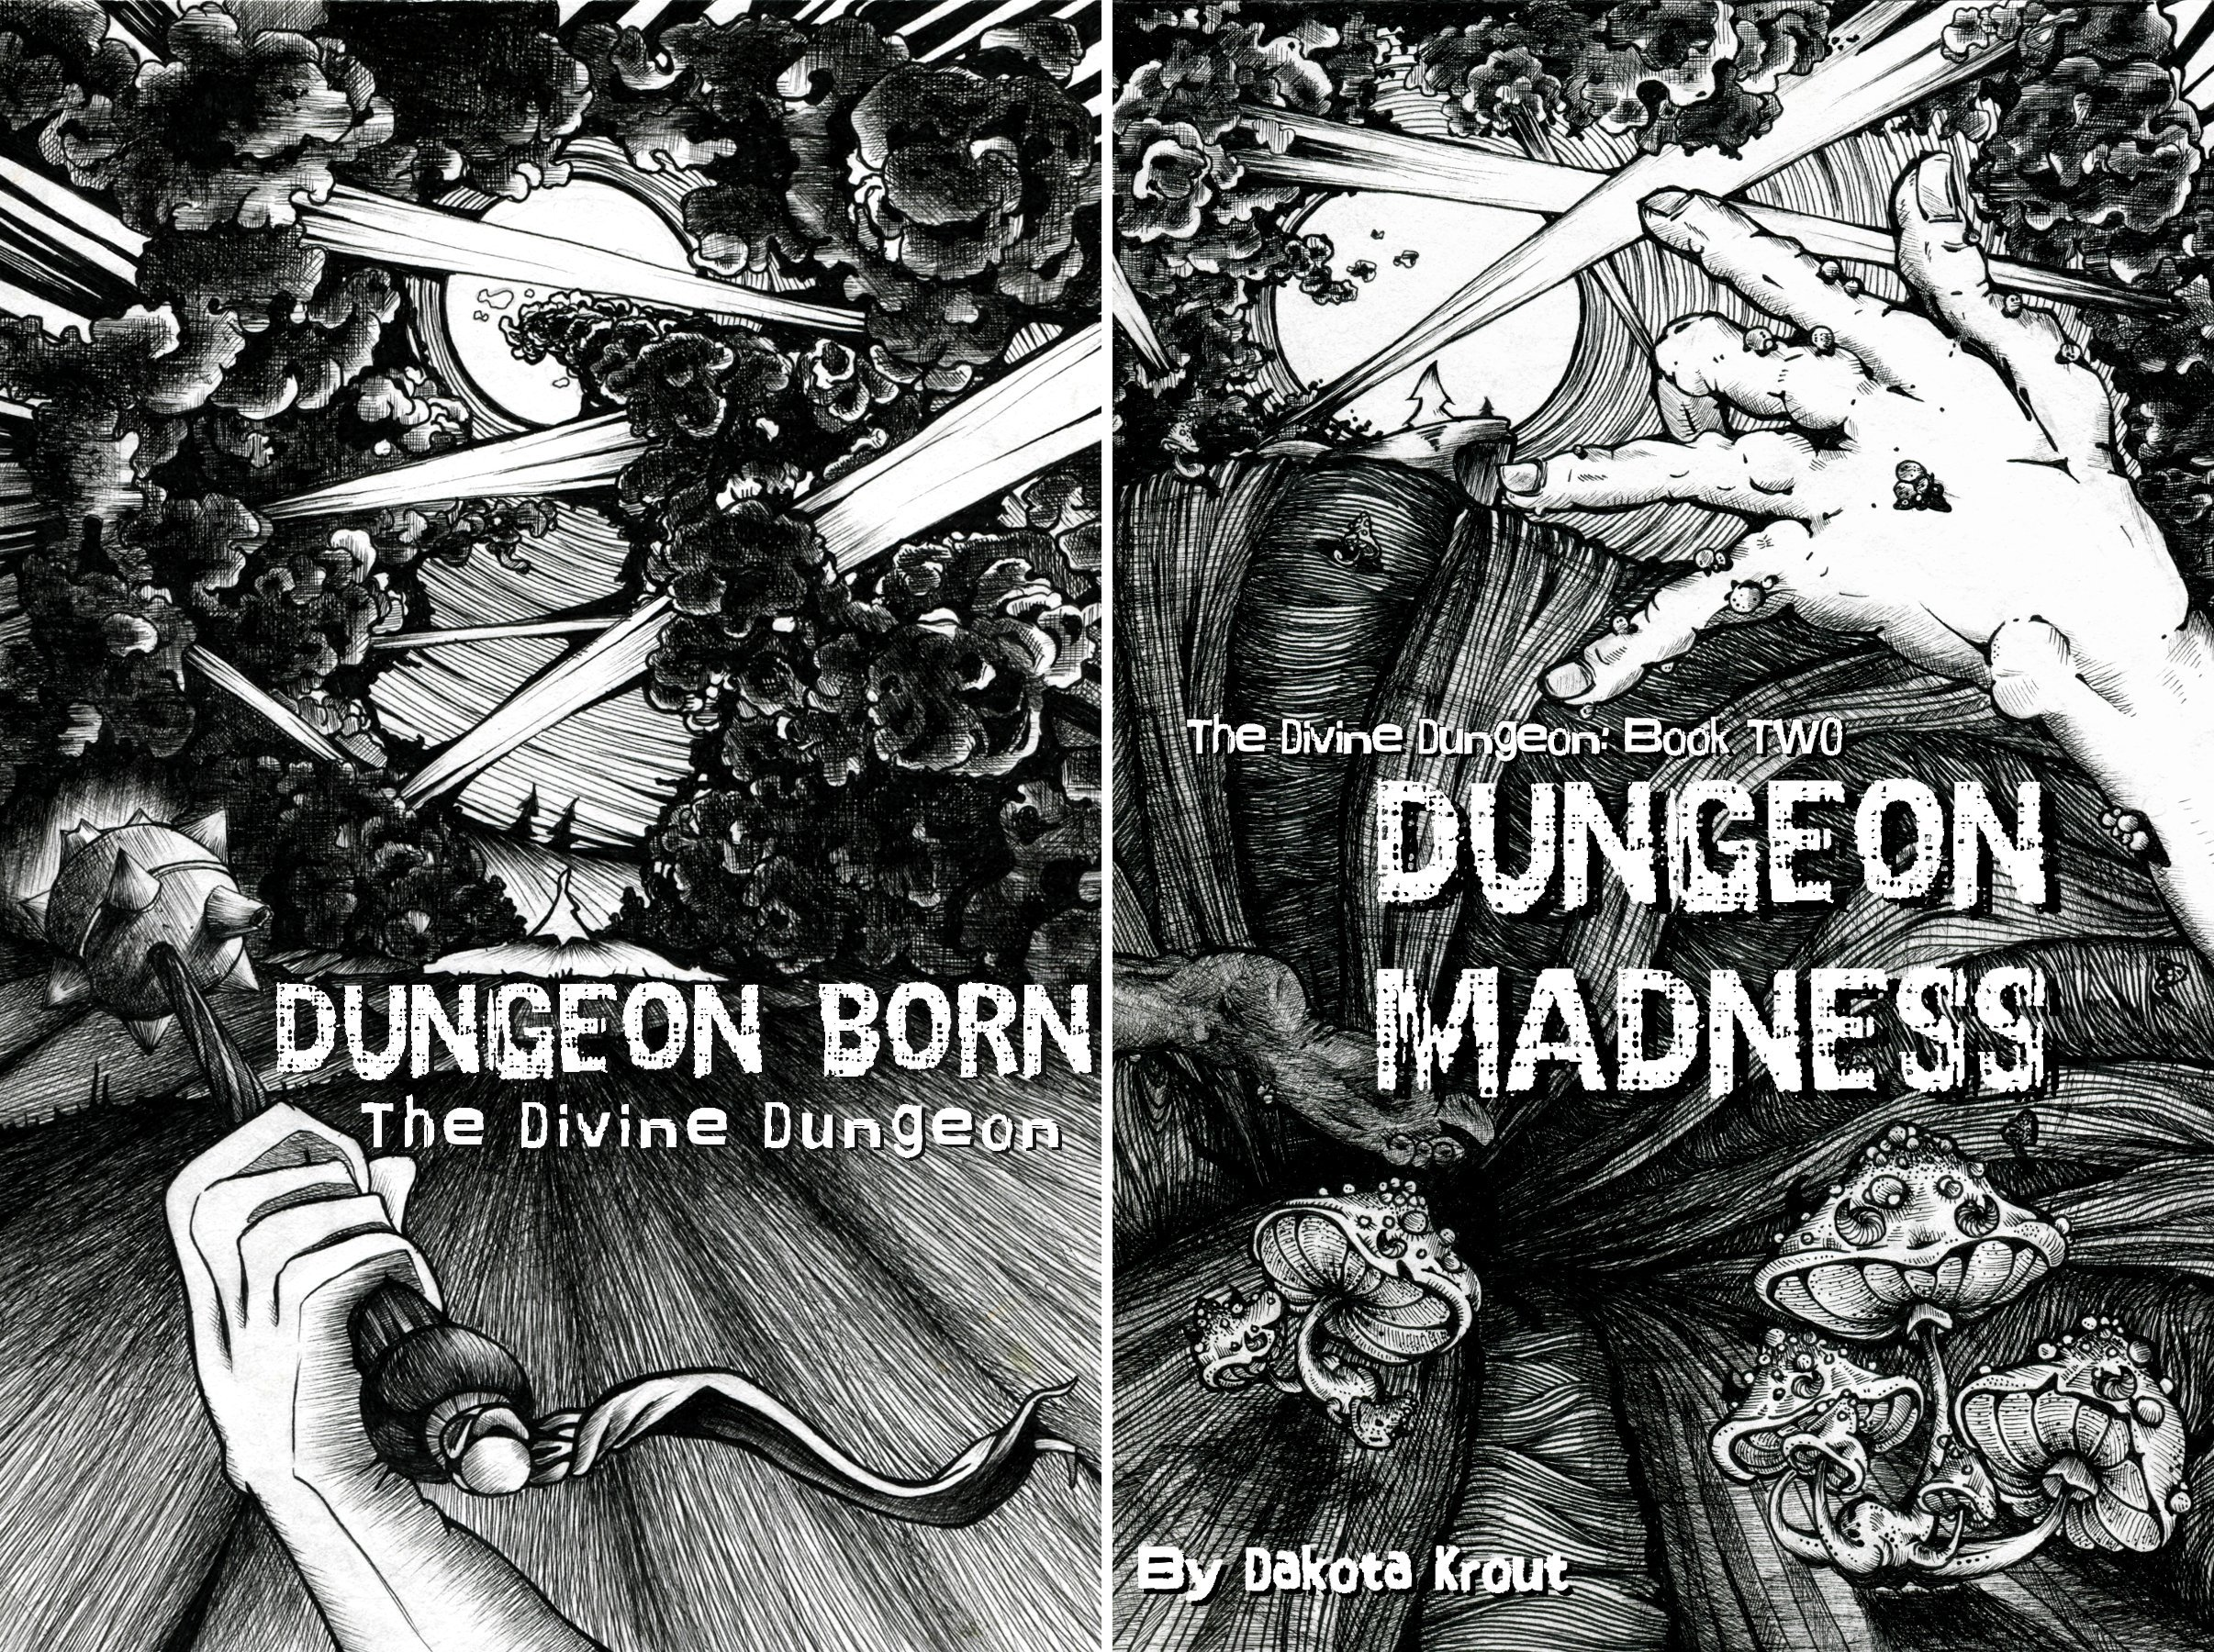 The Divine Dungeon (2 Book Series)